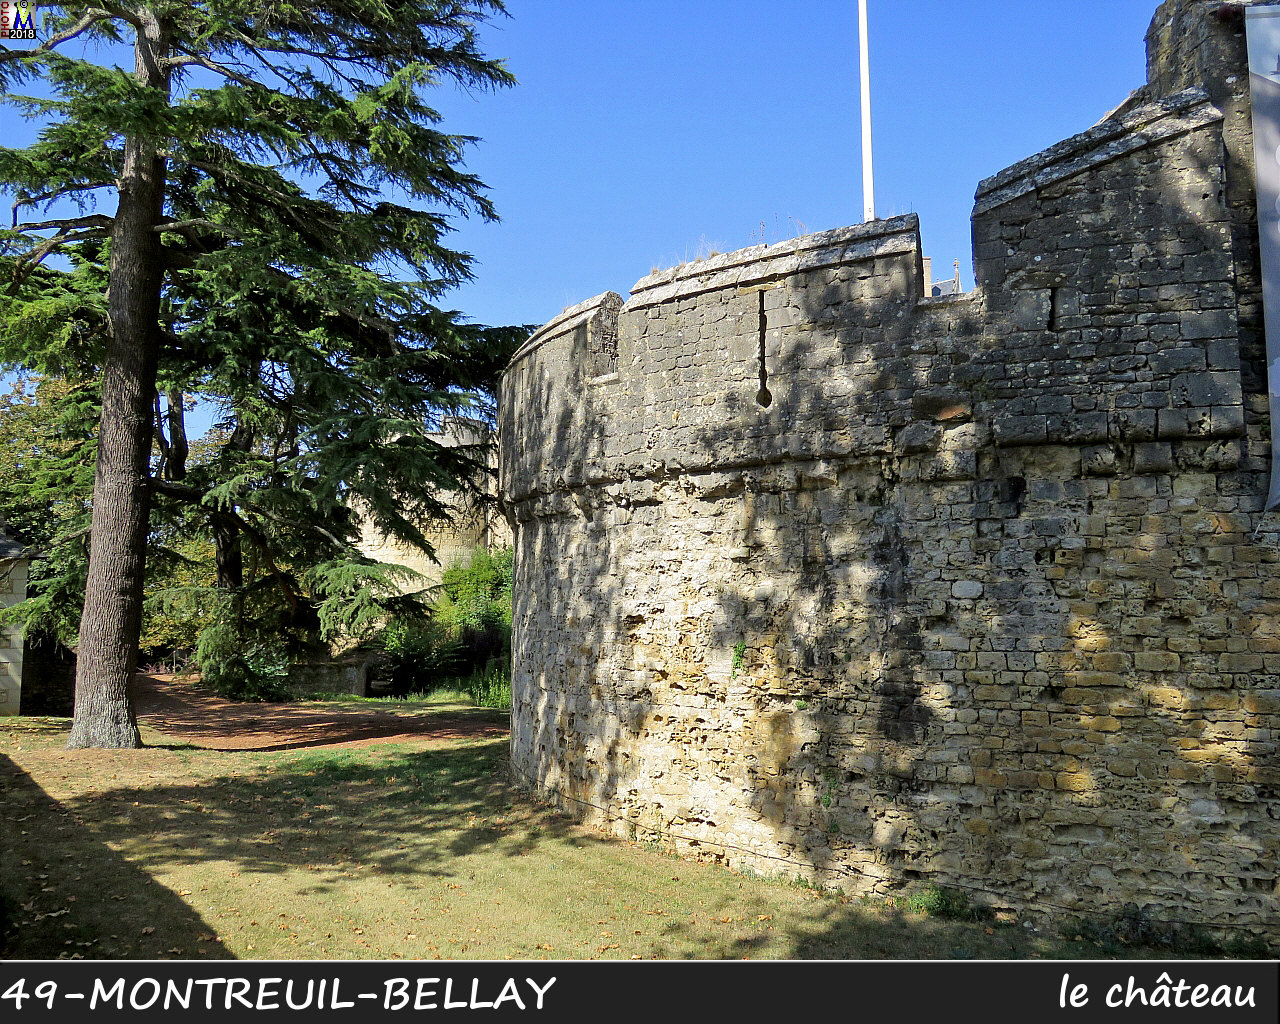 49MONTREUIL-BELLAY_chateau_1060.jpg